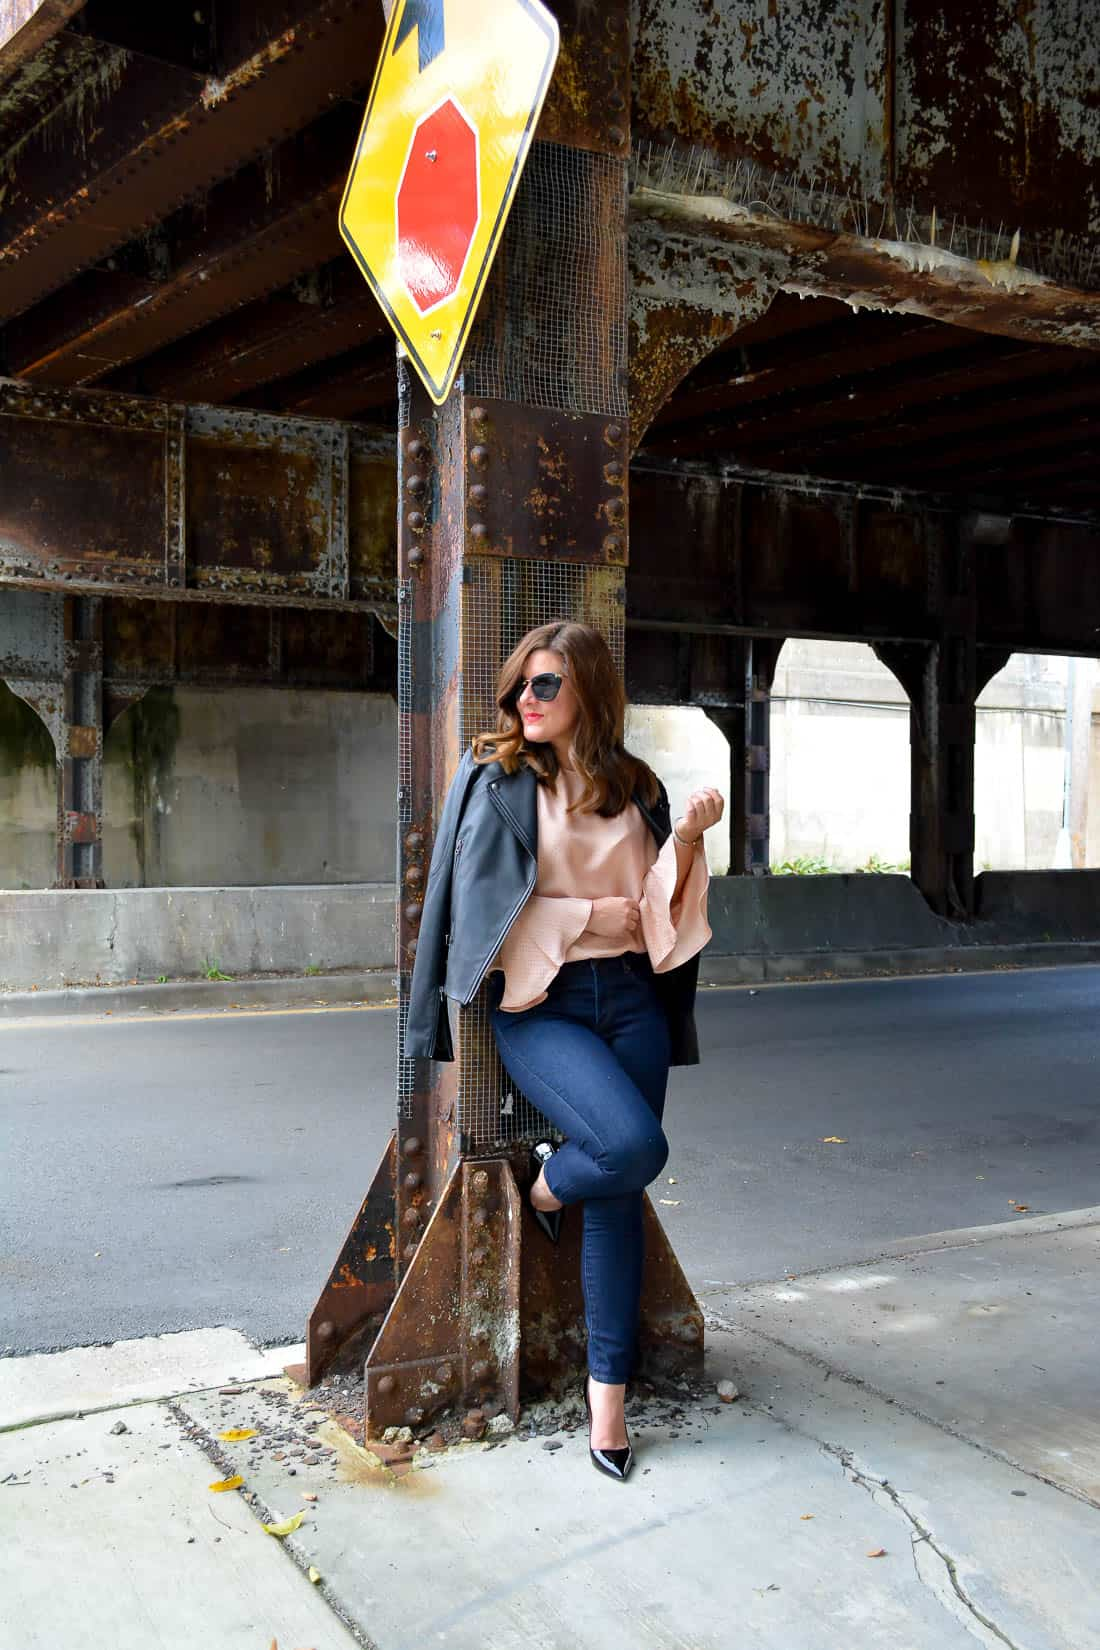 LOFT Skinny Jeans, Nordstrom black leather jacket, Ann Taylor bell sleeve top, bell sleeve top, bell sleeve blouse, Kate Spade black patent leather heels. Miu Miu sunglasses, chicago blogger